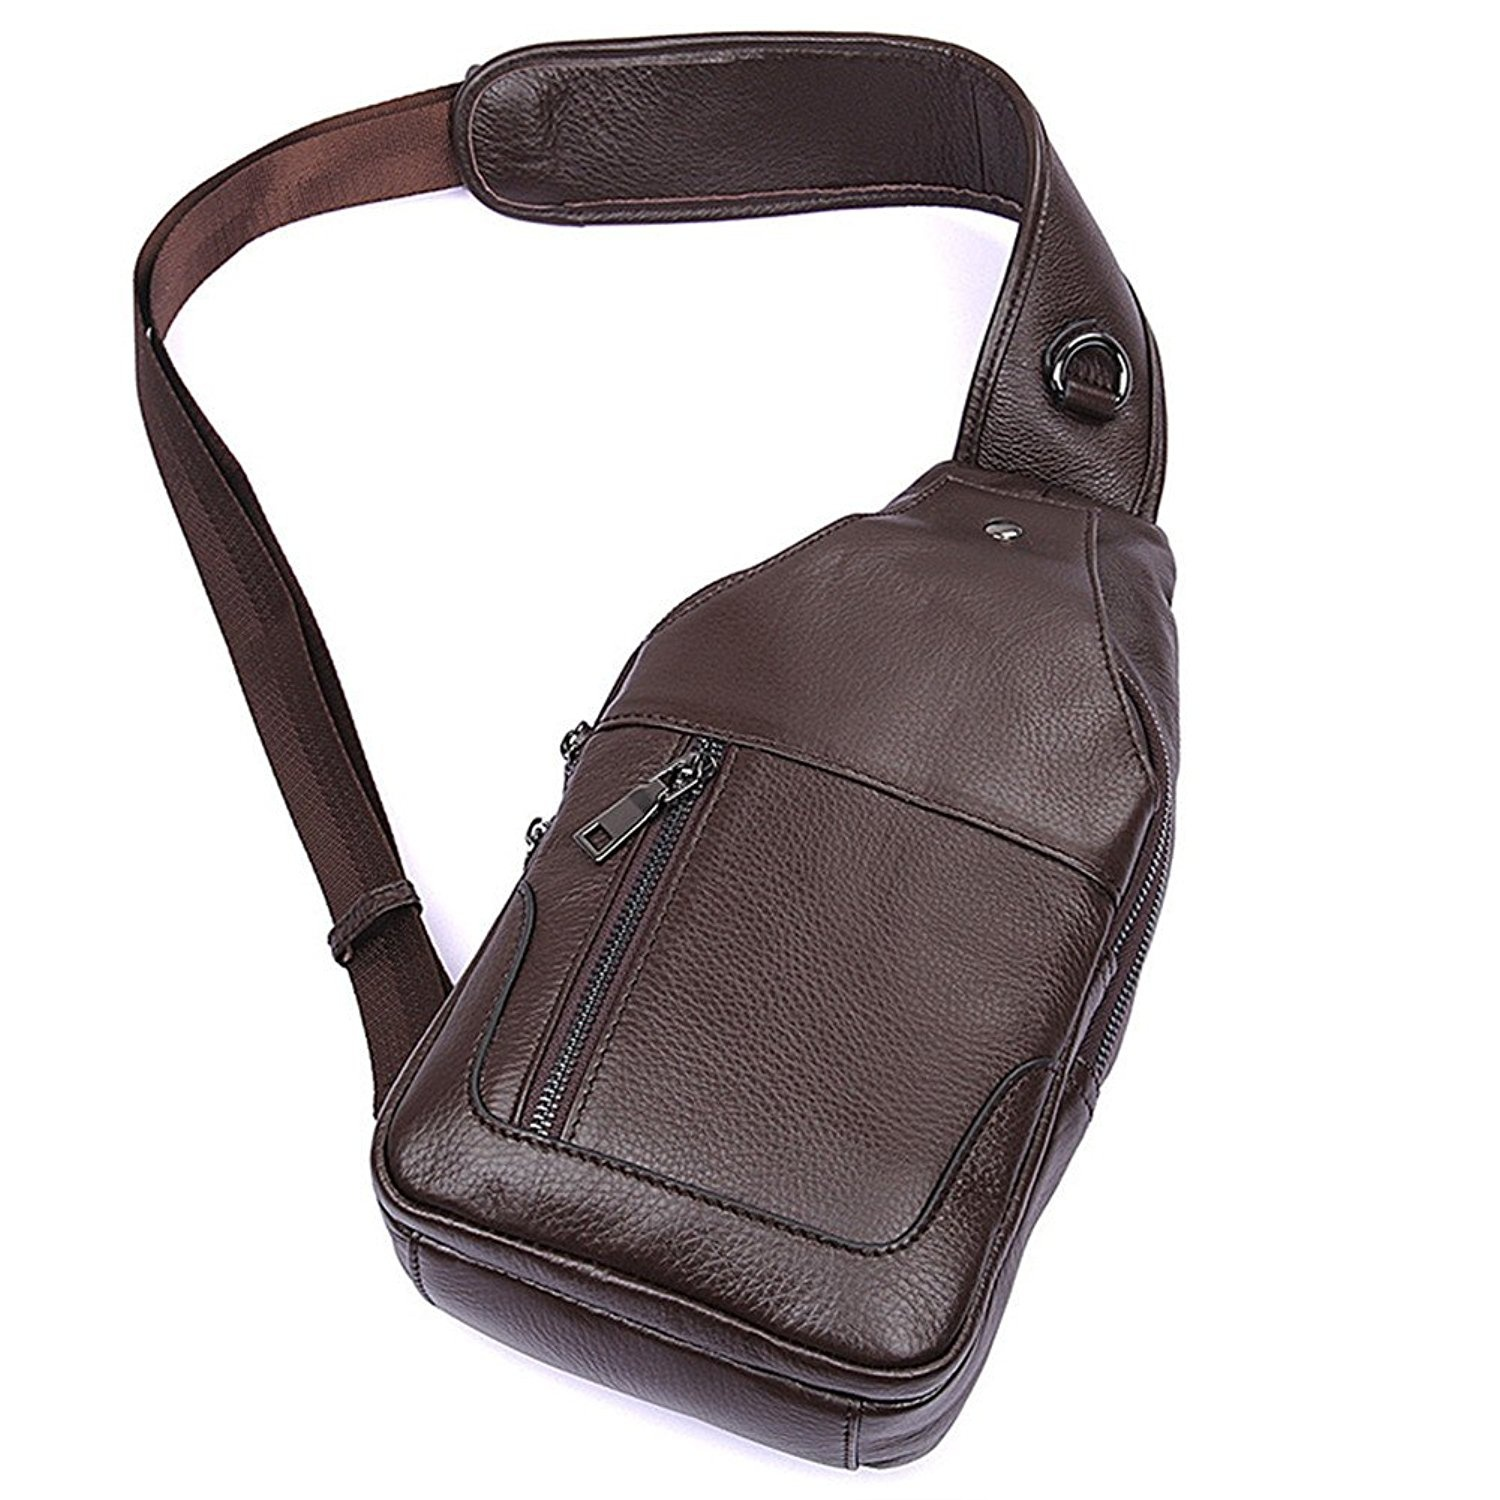 80cef52ccd Leather Camera Bags Bags  Buy Online from Fishpond.co.nz